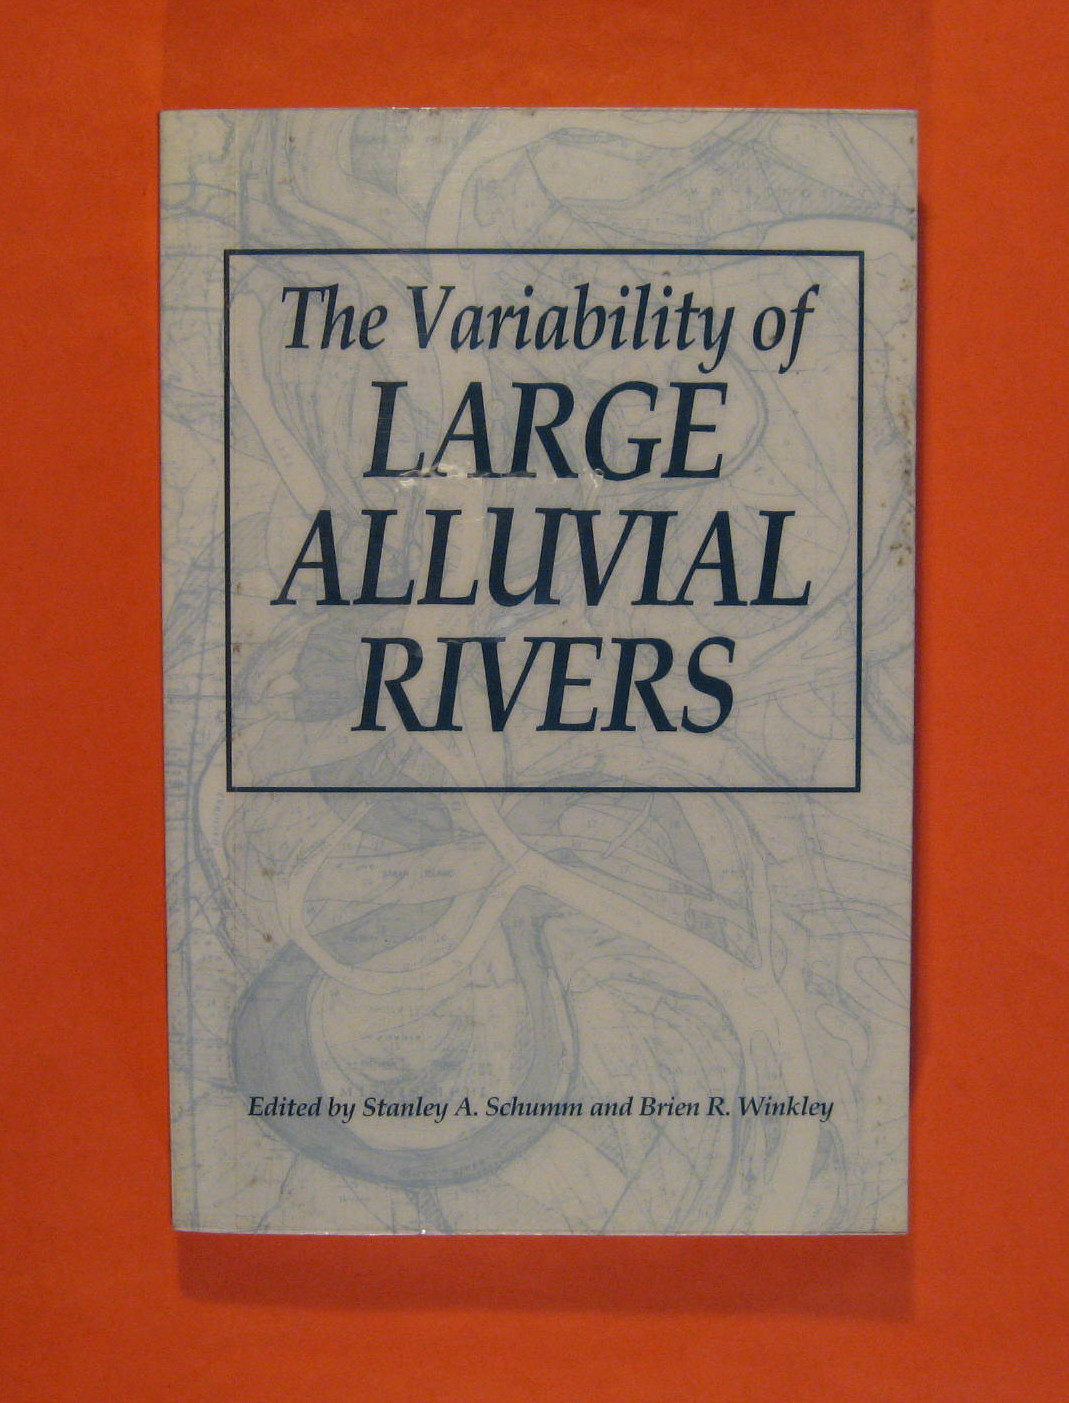 The Variability of Large Alluvial Rivers, Schumm, Stanley Alfred; Winkley, Brien R. (eds.)